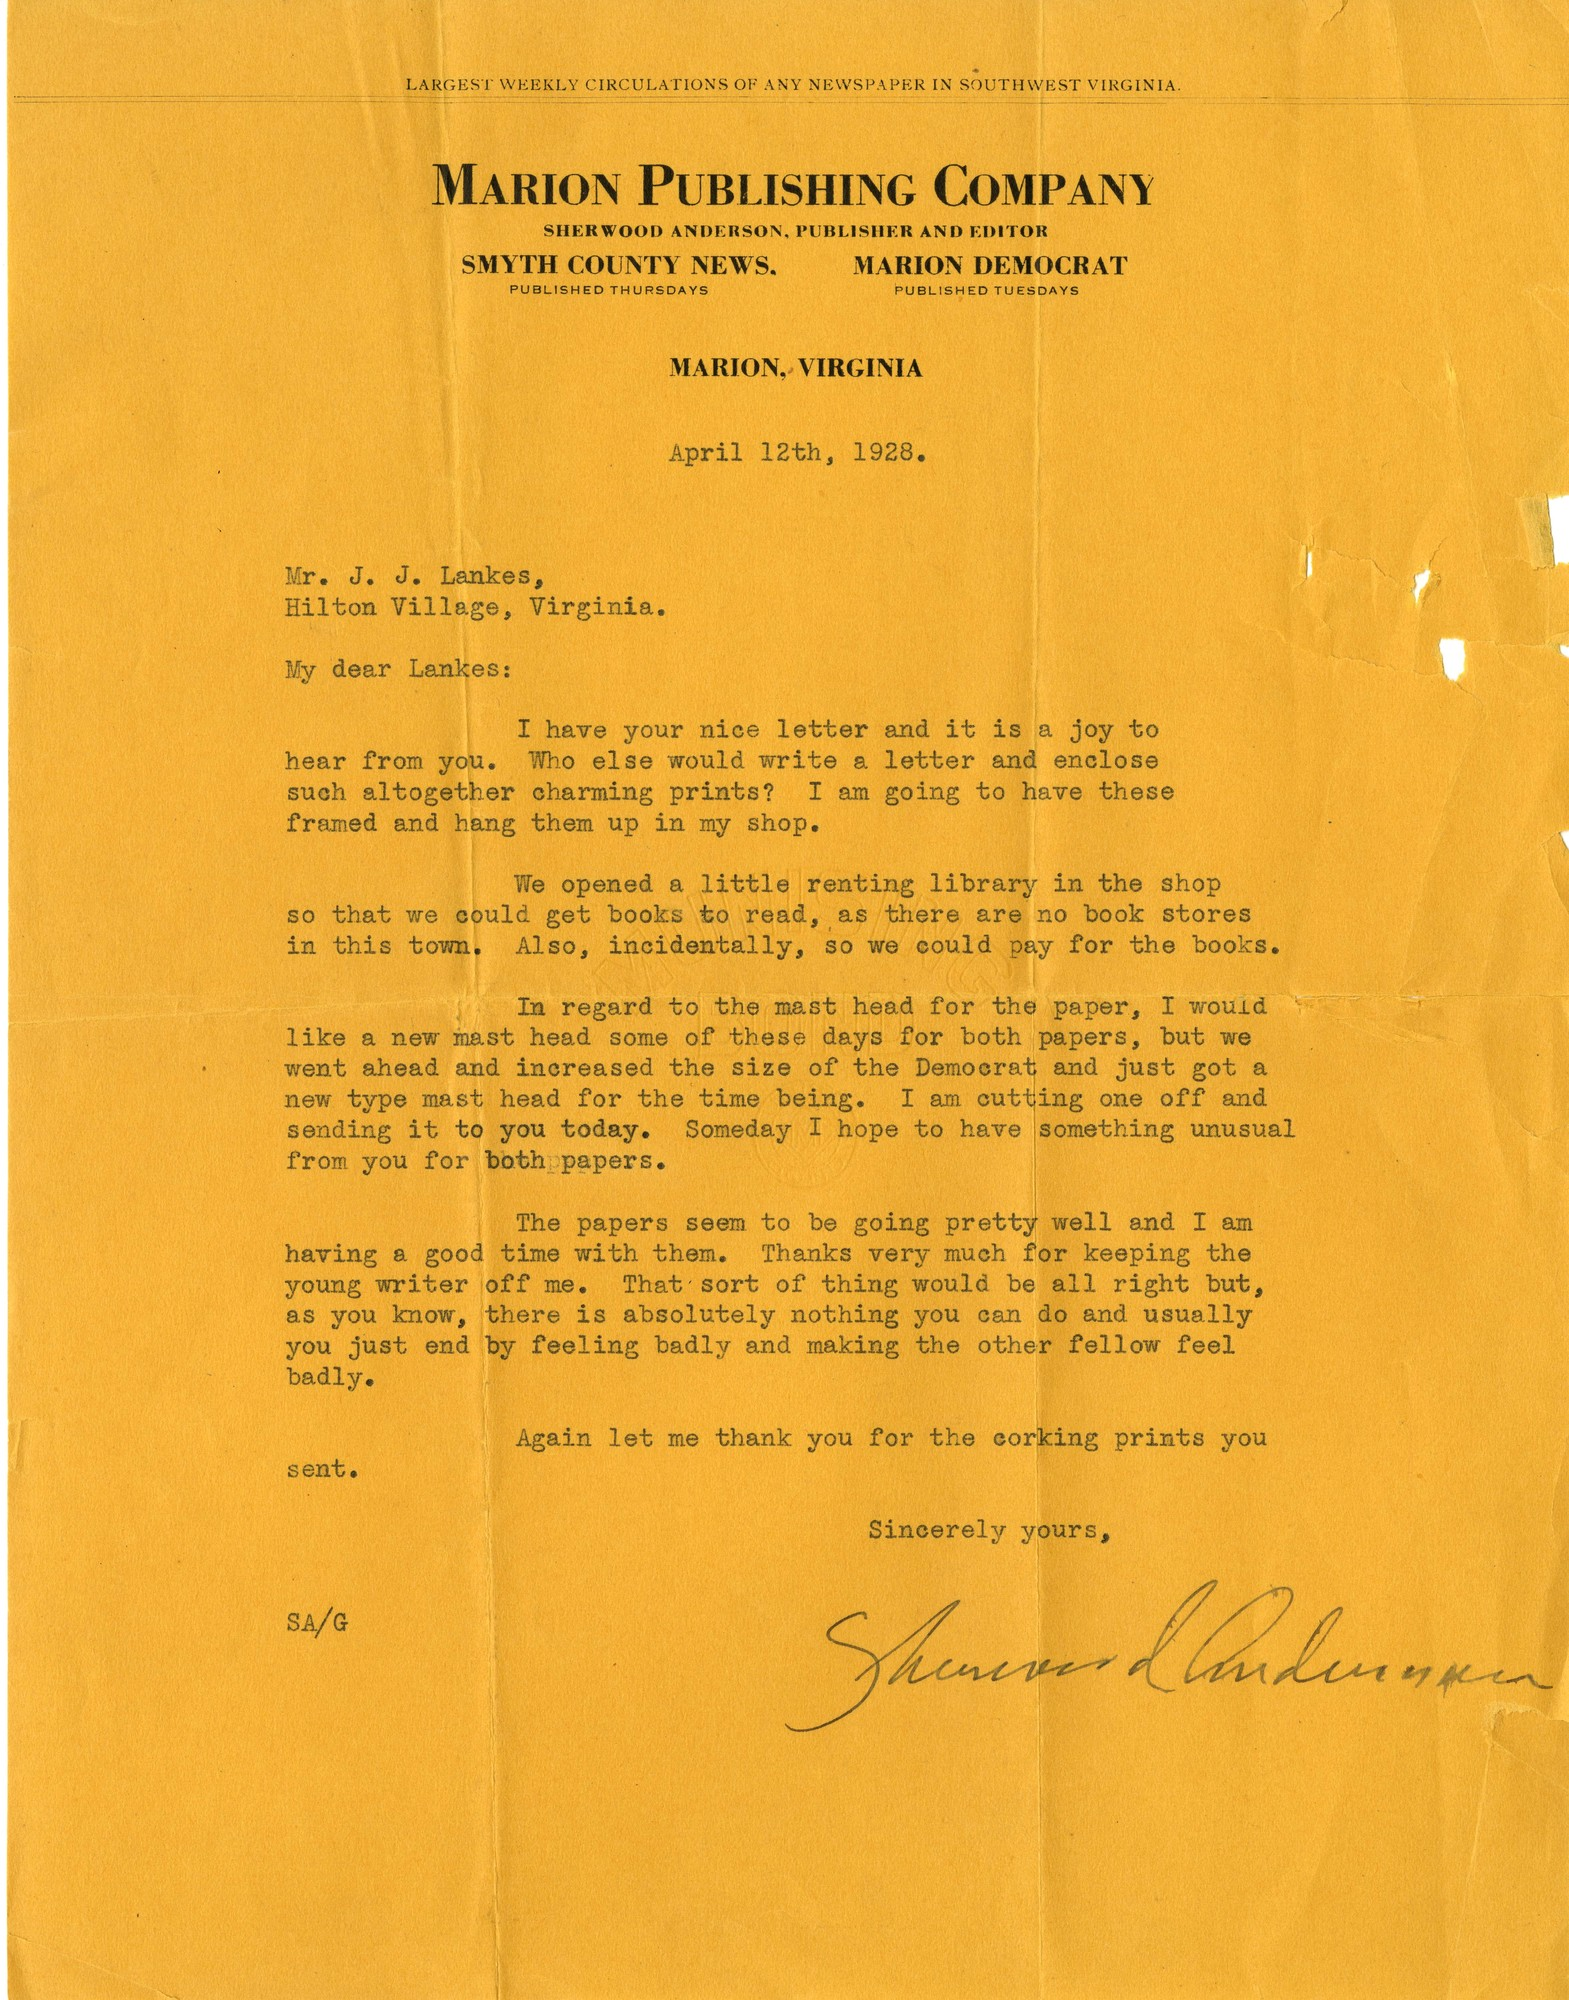 Letter, Sherwood Anderson to J. J. Lankes, April 12, 1928 (Ms2015-020)